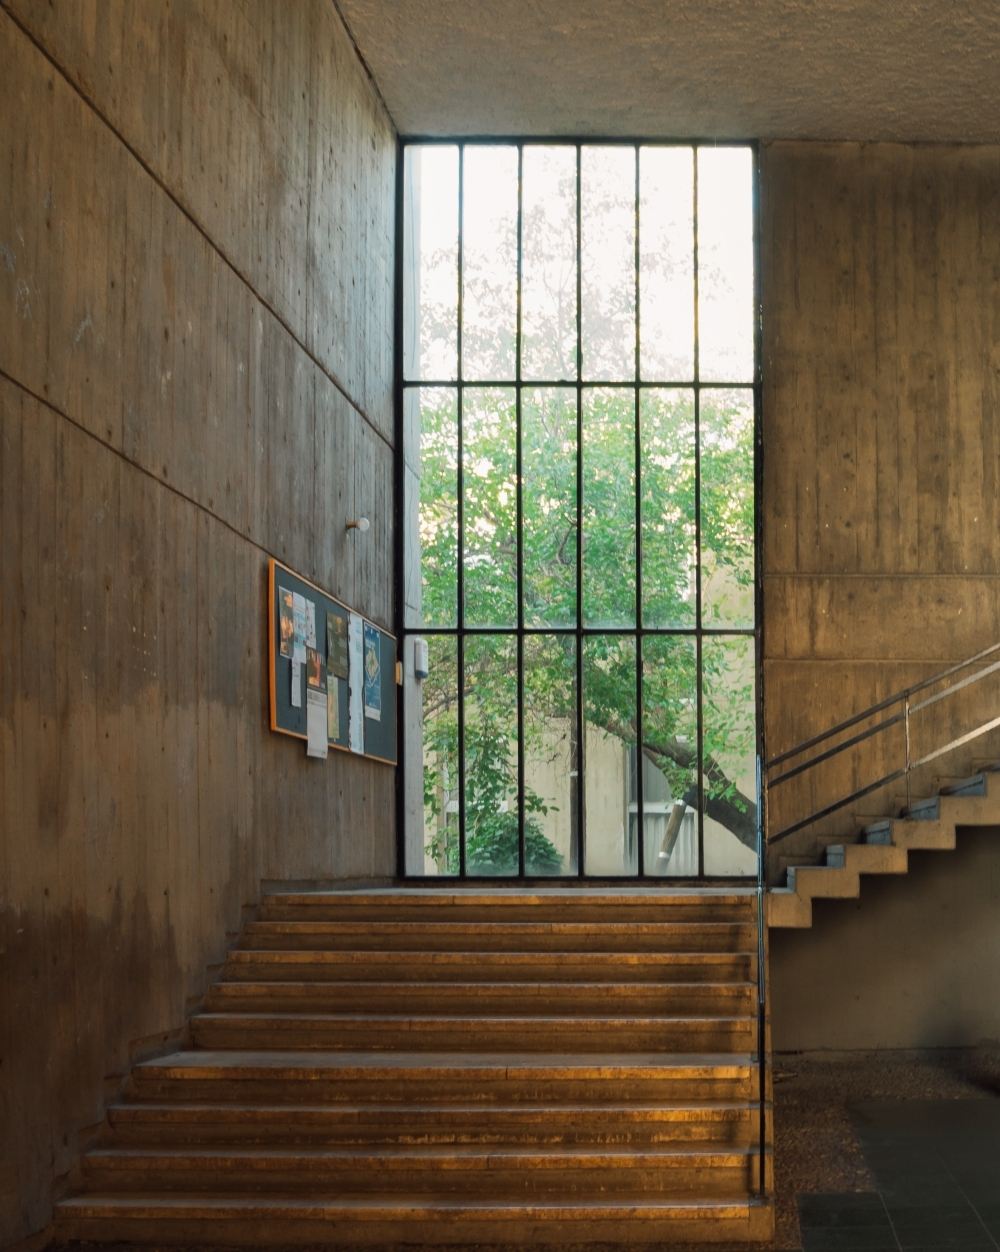 Brown Concrete Staircase Near Green Metal Window Grill Photo | Window Design For Stairs | Exterior | Kitchen Color Combination | Home Wooden Staircase | Residential | Two Story Staircase